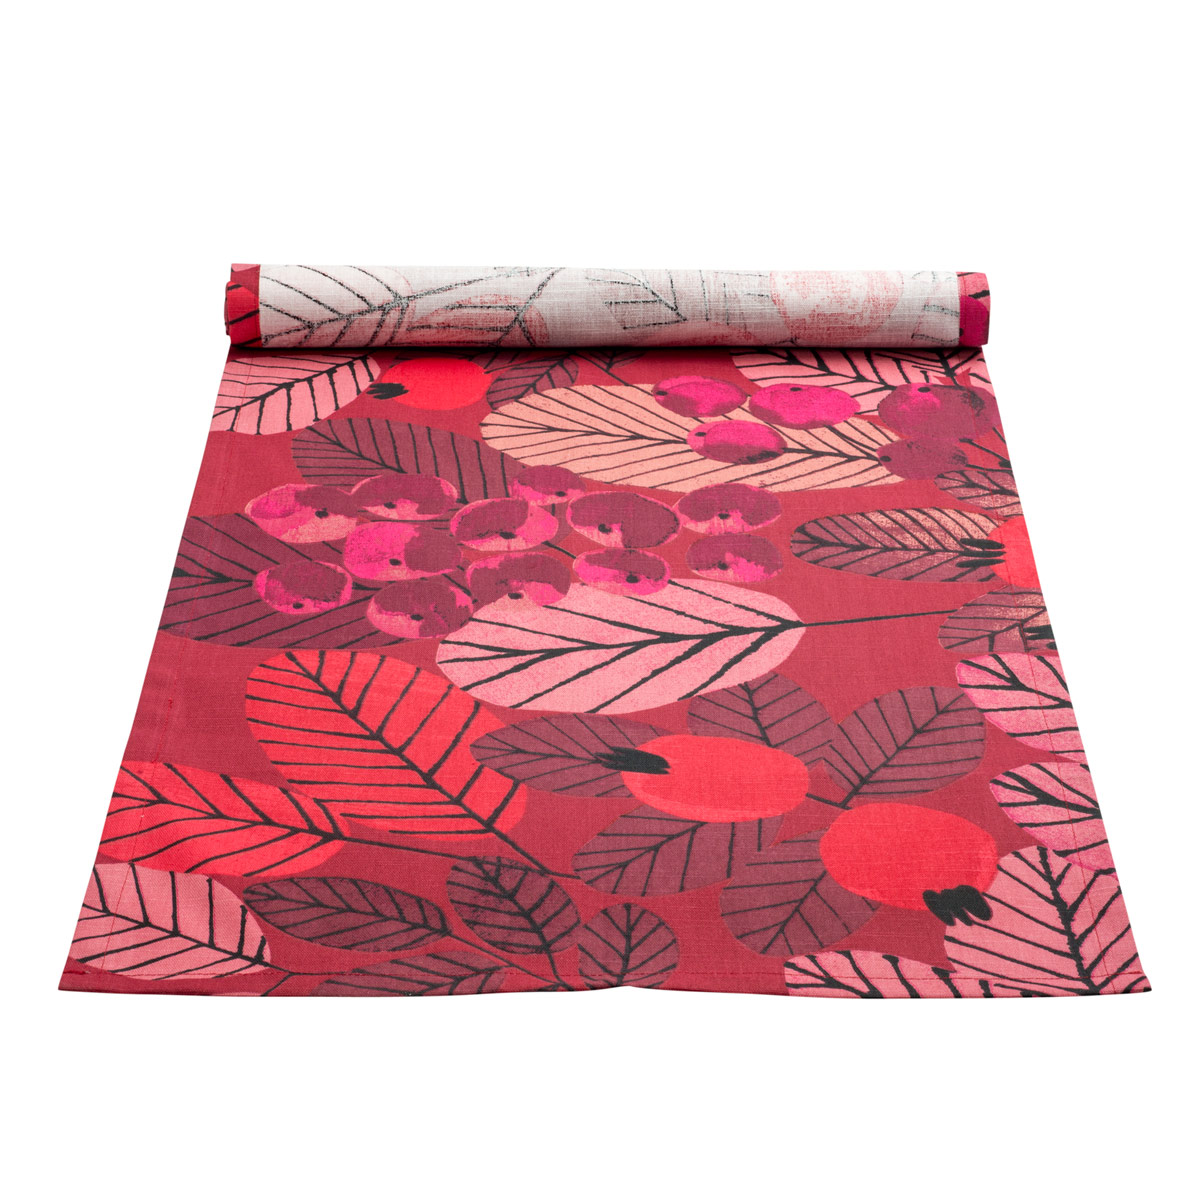 Delicieux Pentik Ruusunmarja (Rose Hip) Red Coated Table Runner